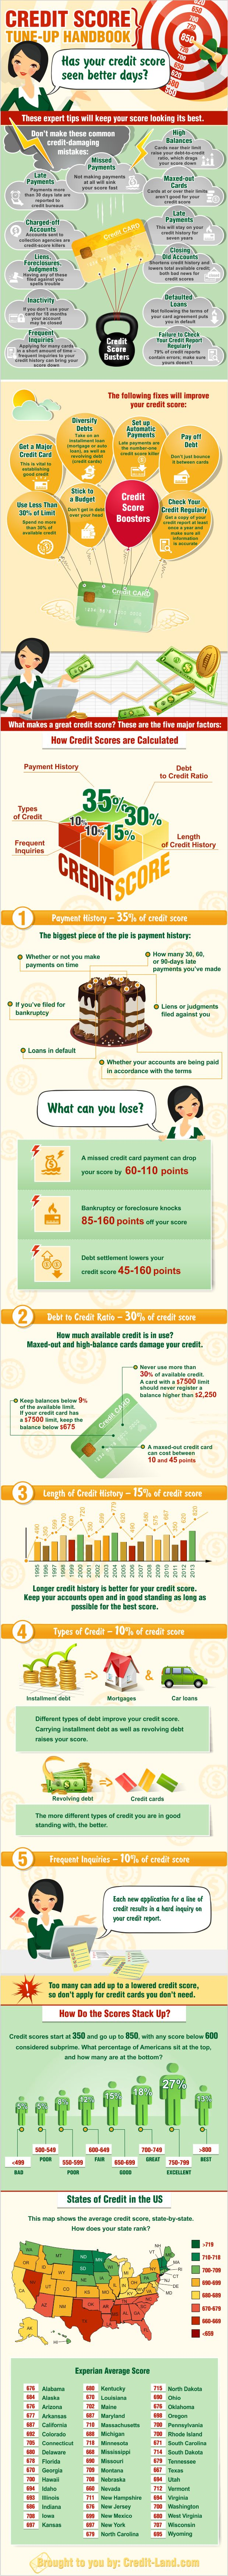 This credit scores for dummies is an amazing infographic that clearly maps out EVERYTHING you need to know about credit scores & how to improve your own.